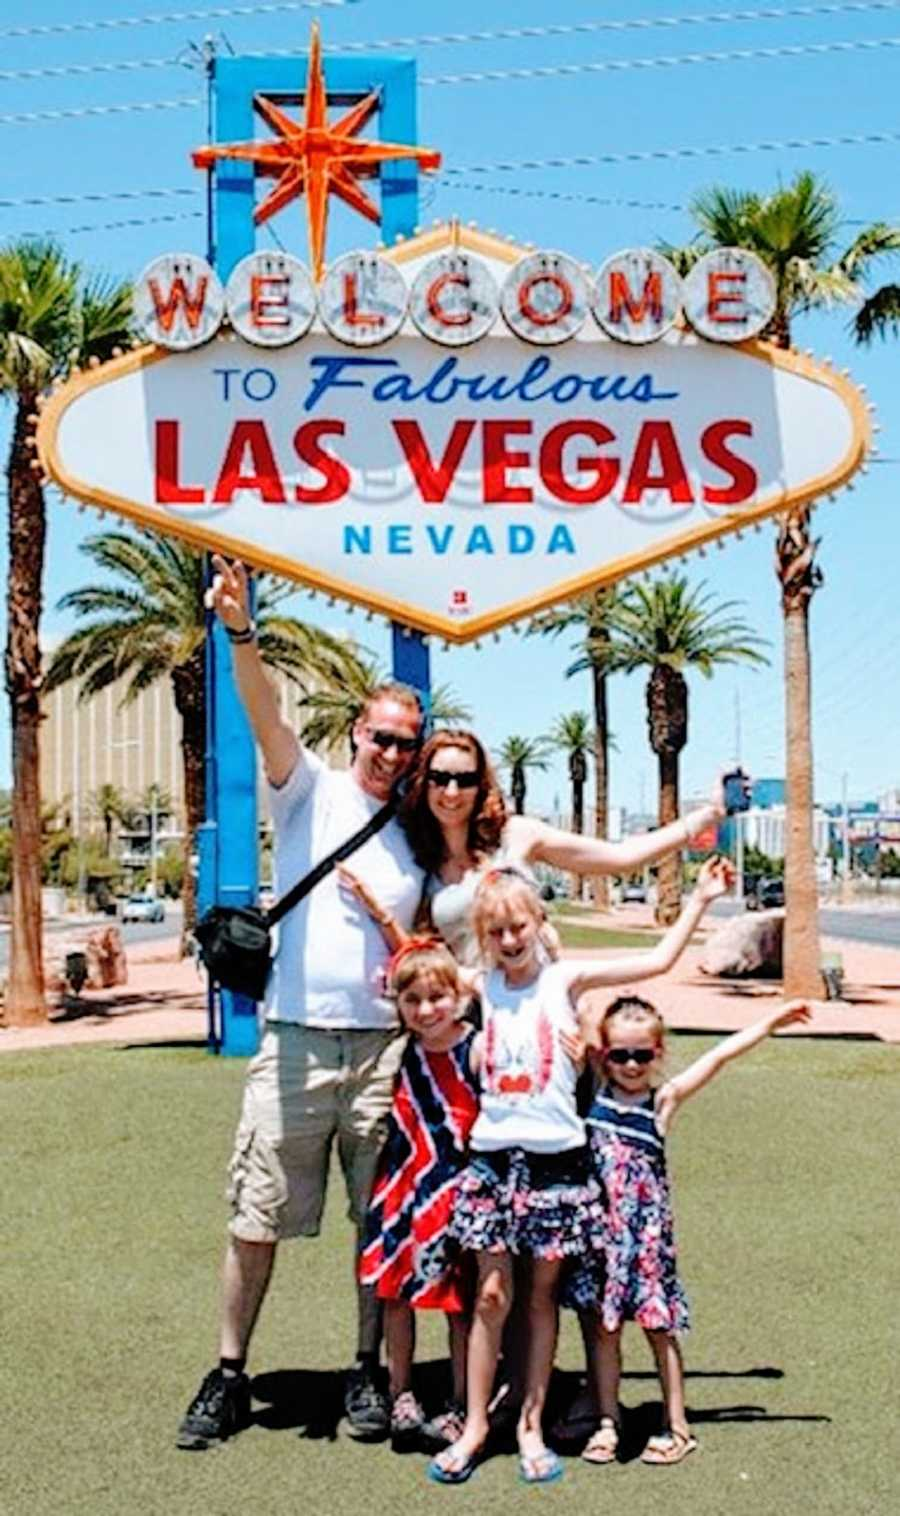 A family stand together outside of a Vegas sign